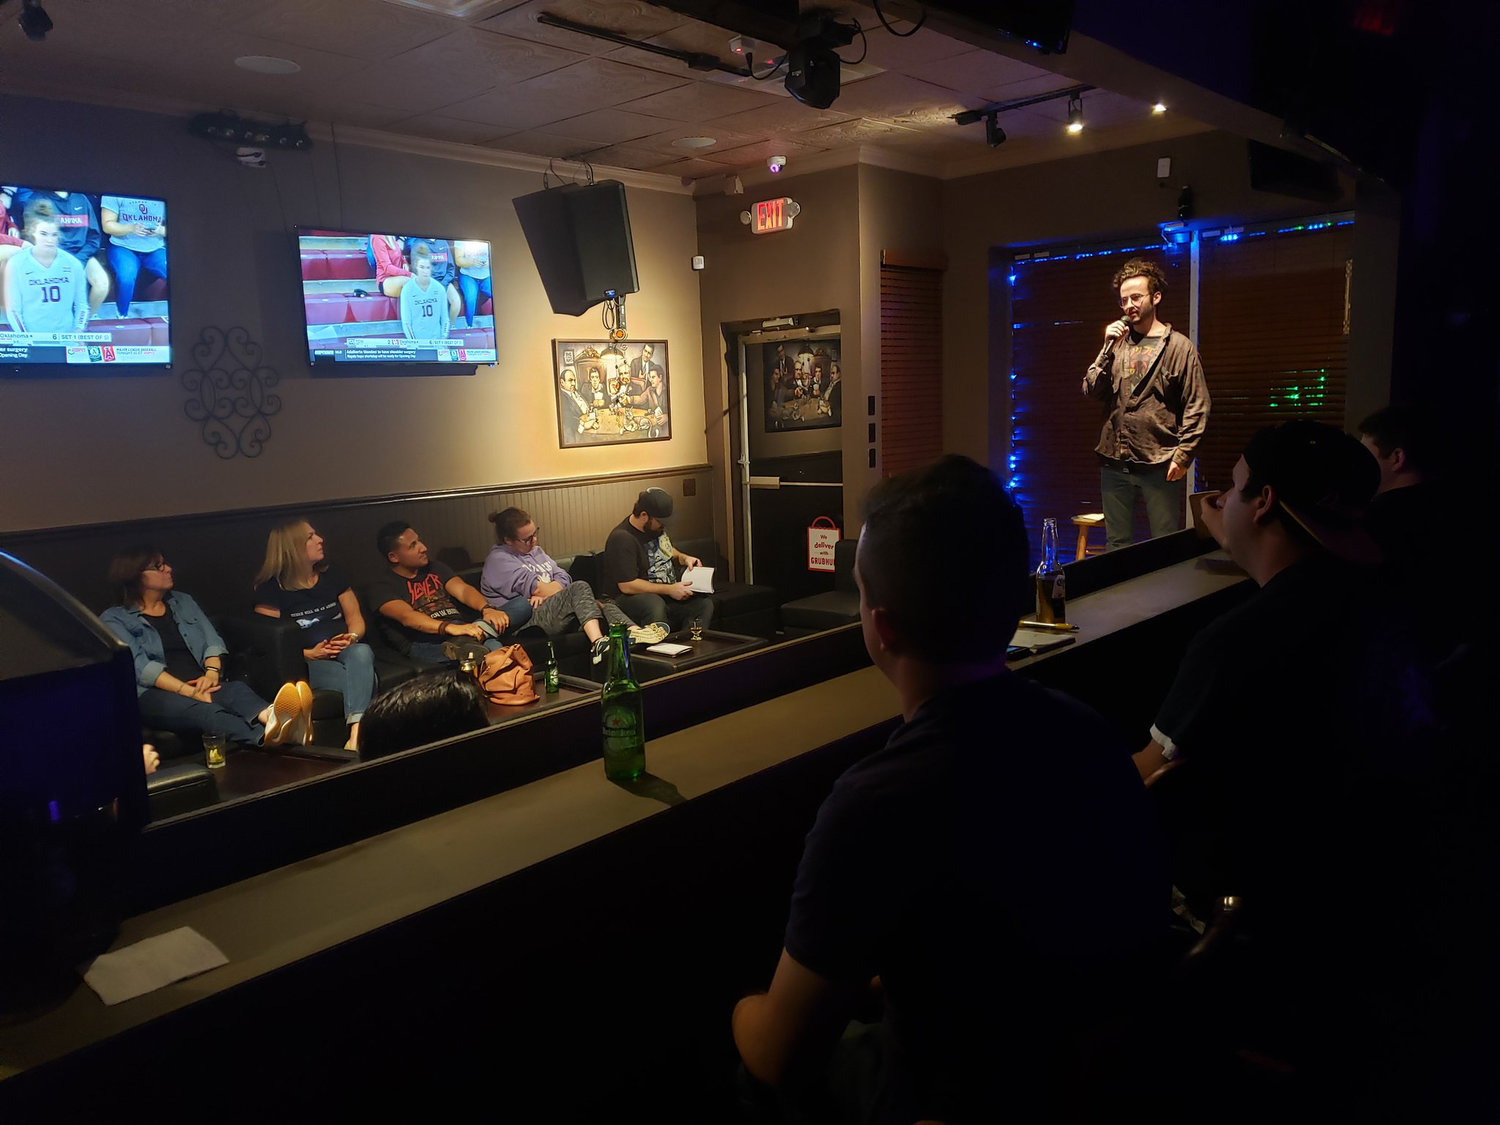 Open mic regulars listened on as Abe Hannigan worked through his seven-minute set at the Vintage Bar and Lounge in Wantagh on Sept. 25.